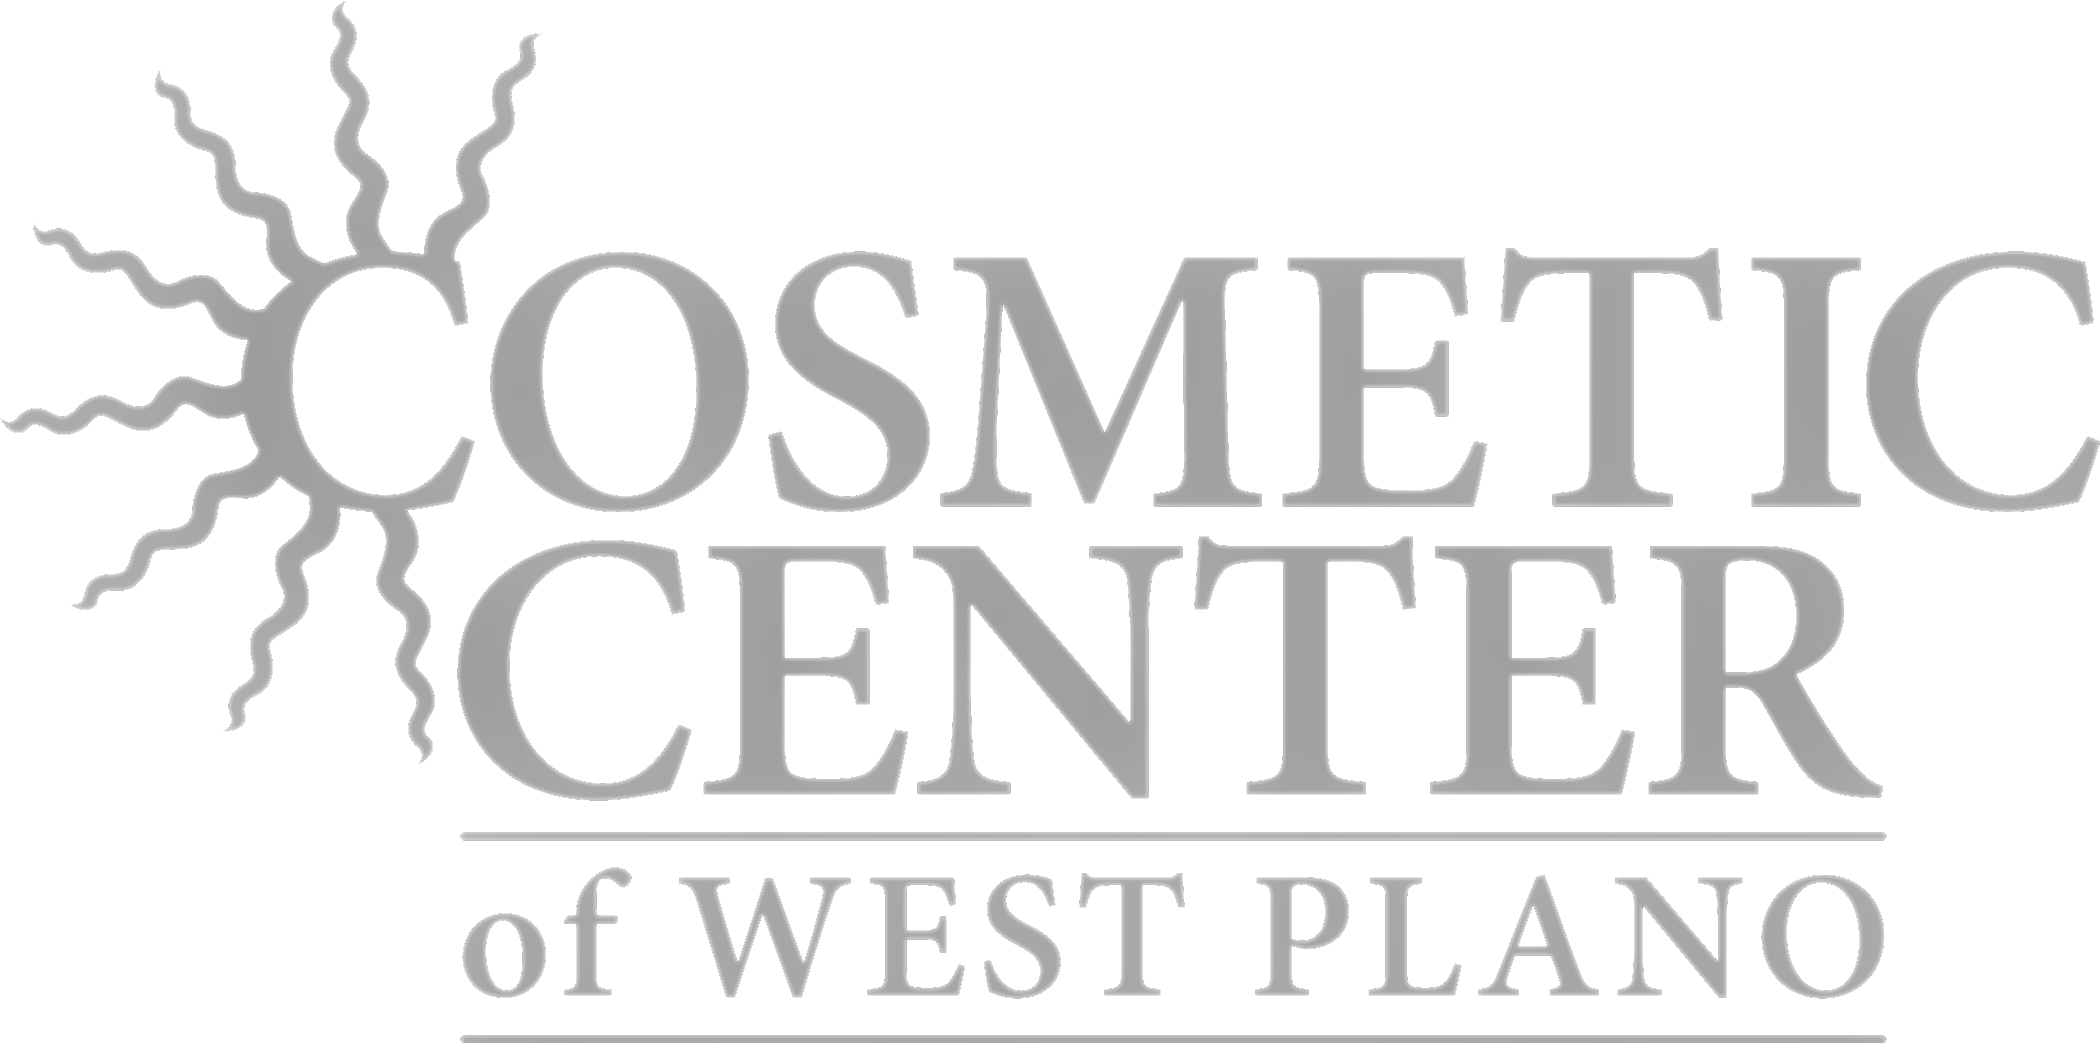 Cosmetic West Plano